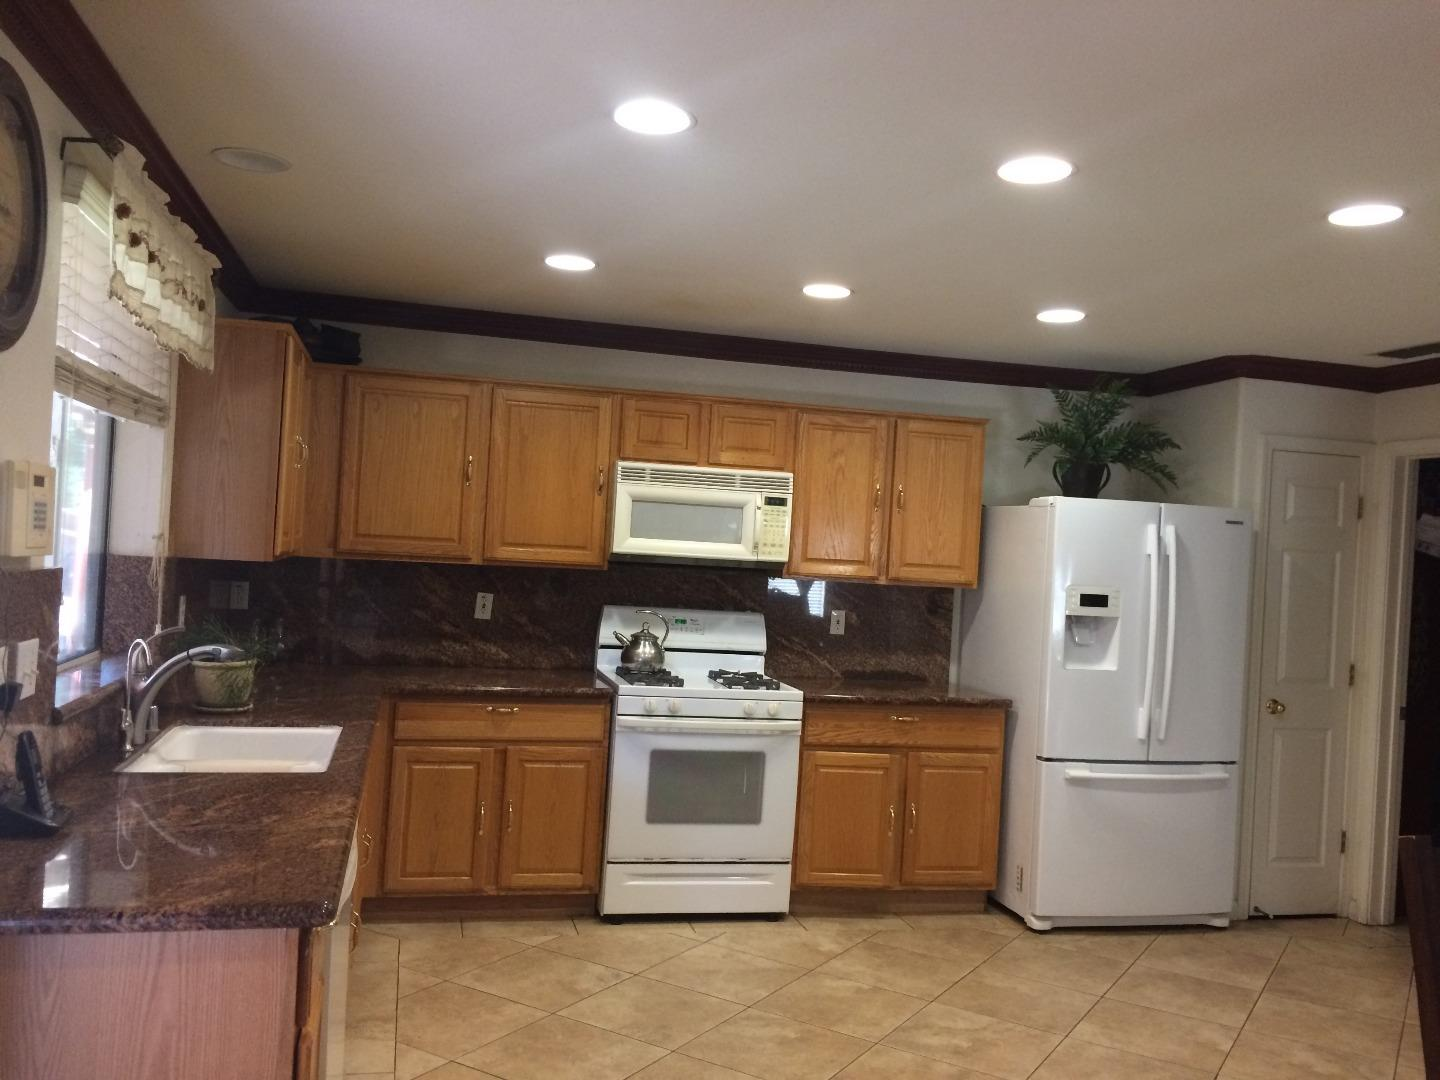 Additional photo for property listing at 1148 Tern Way  Patterson, California 95363 United States